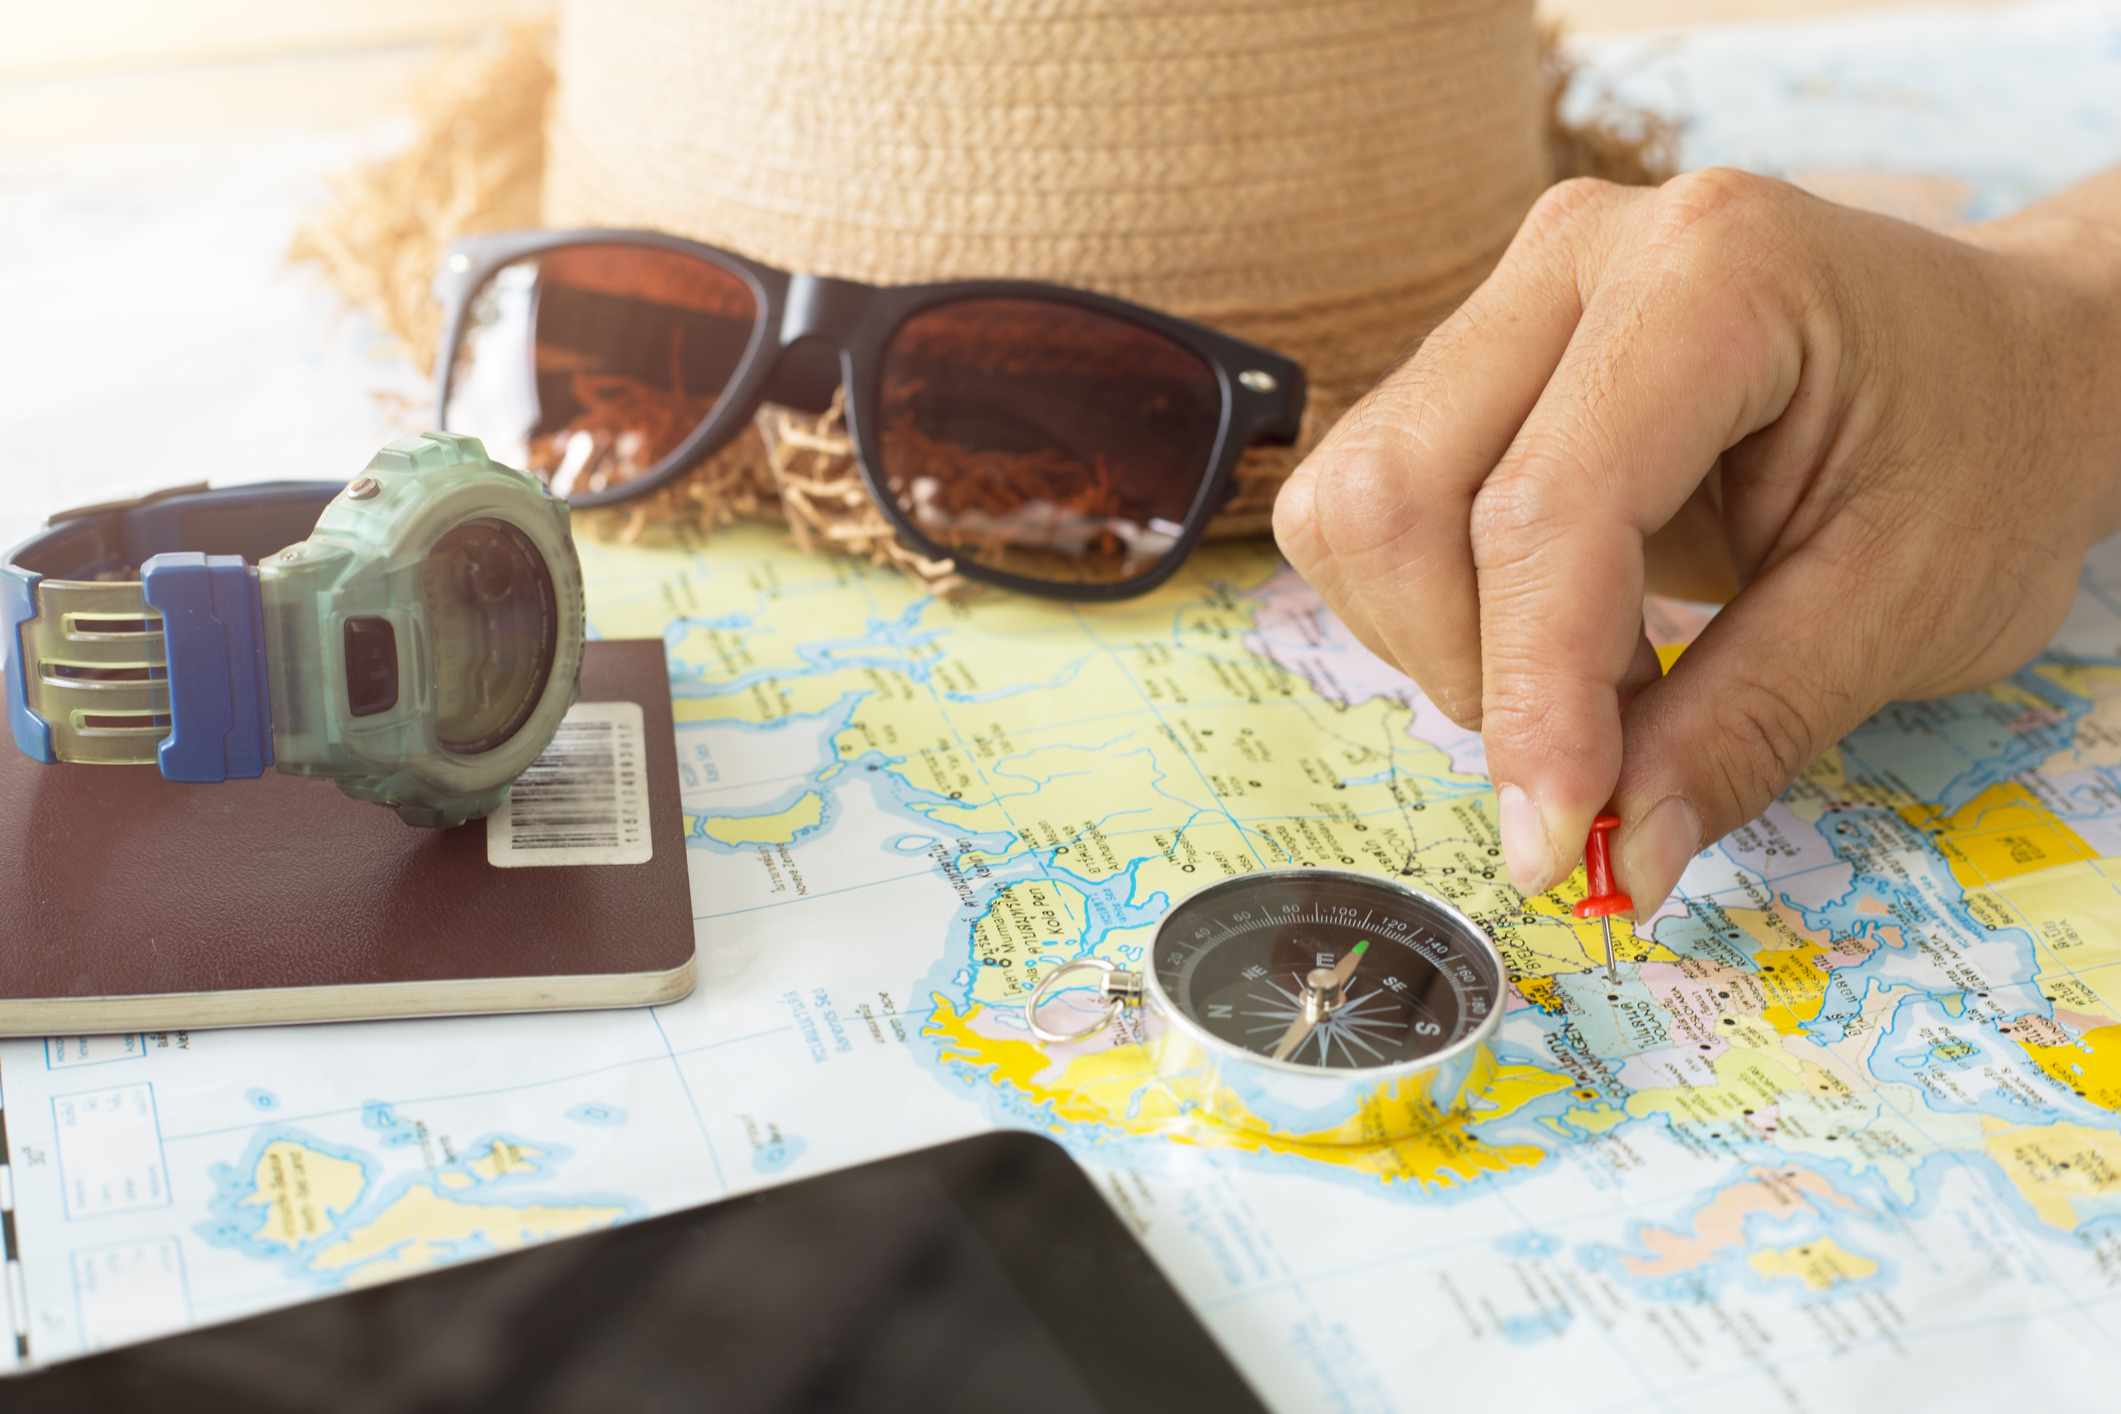 Hand putting a pin into a map with compass and sunglasses